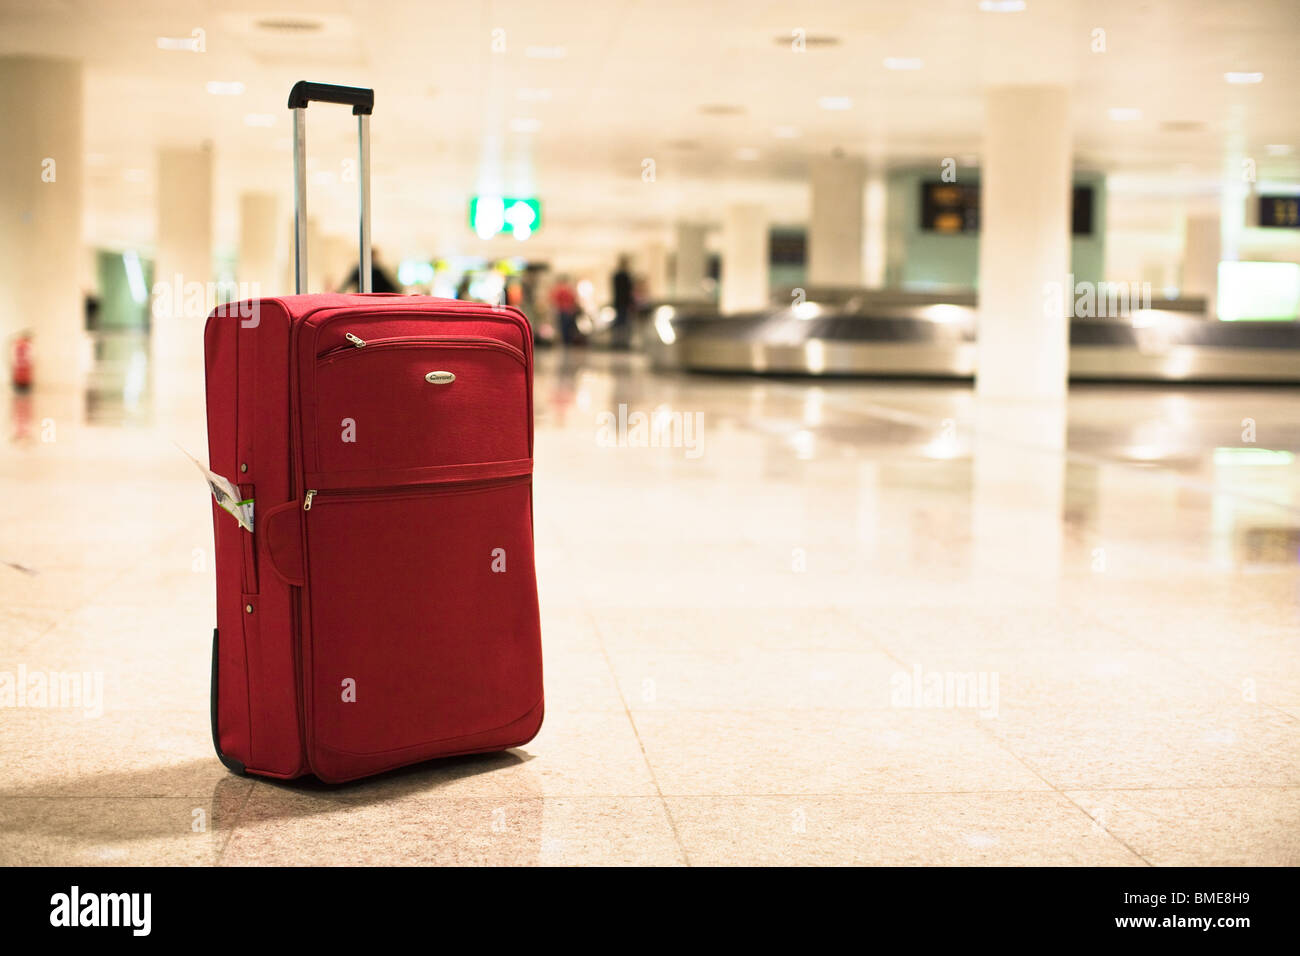 Suitcase at an airport - Stock Image